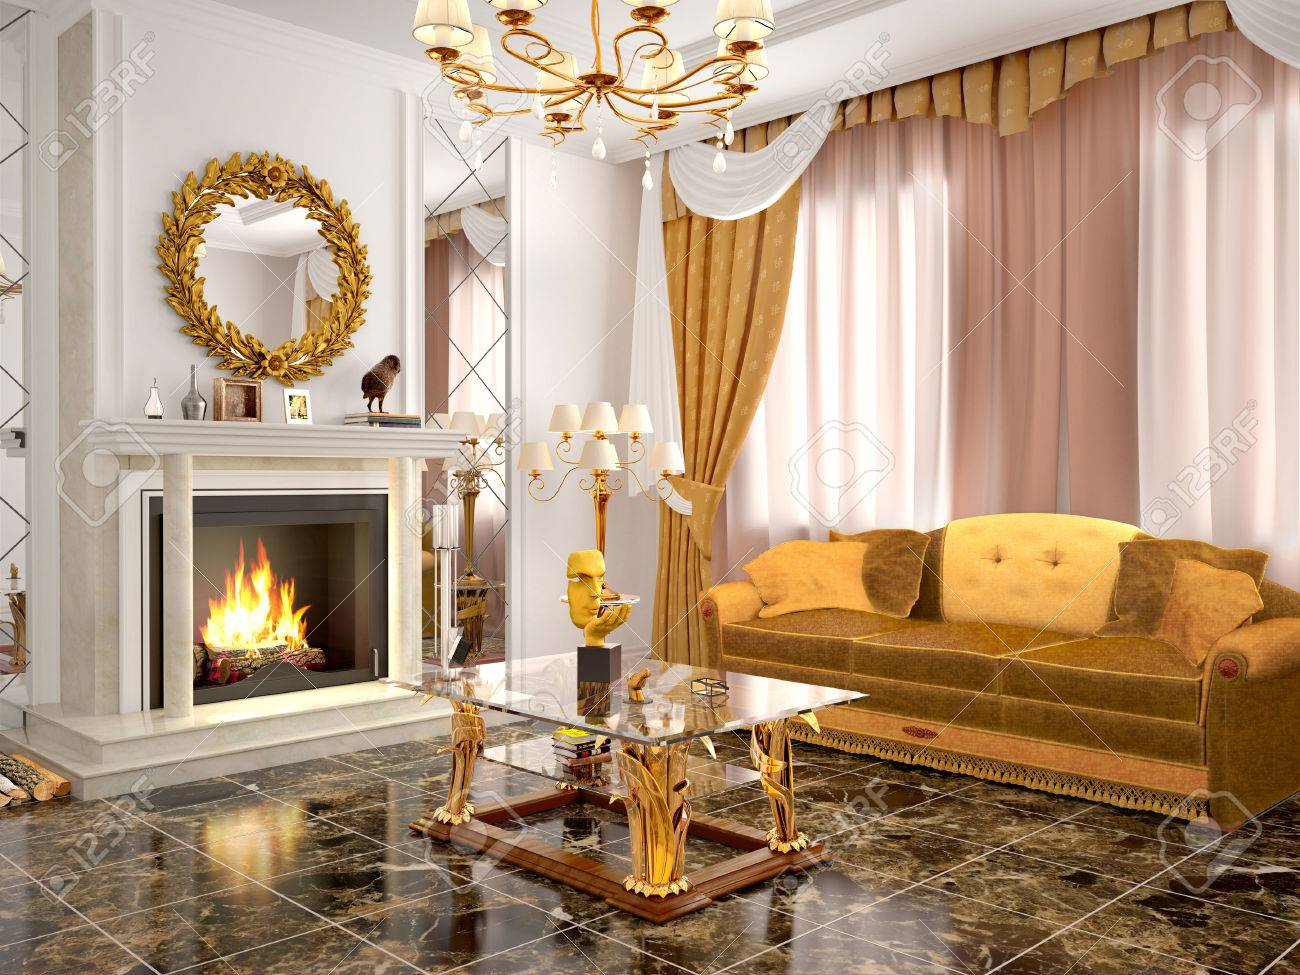 Illustration   Luxurious Living Room With Fireplace. 3d Illustration